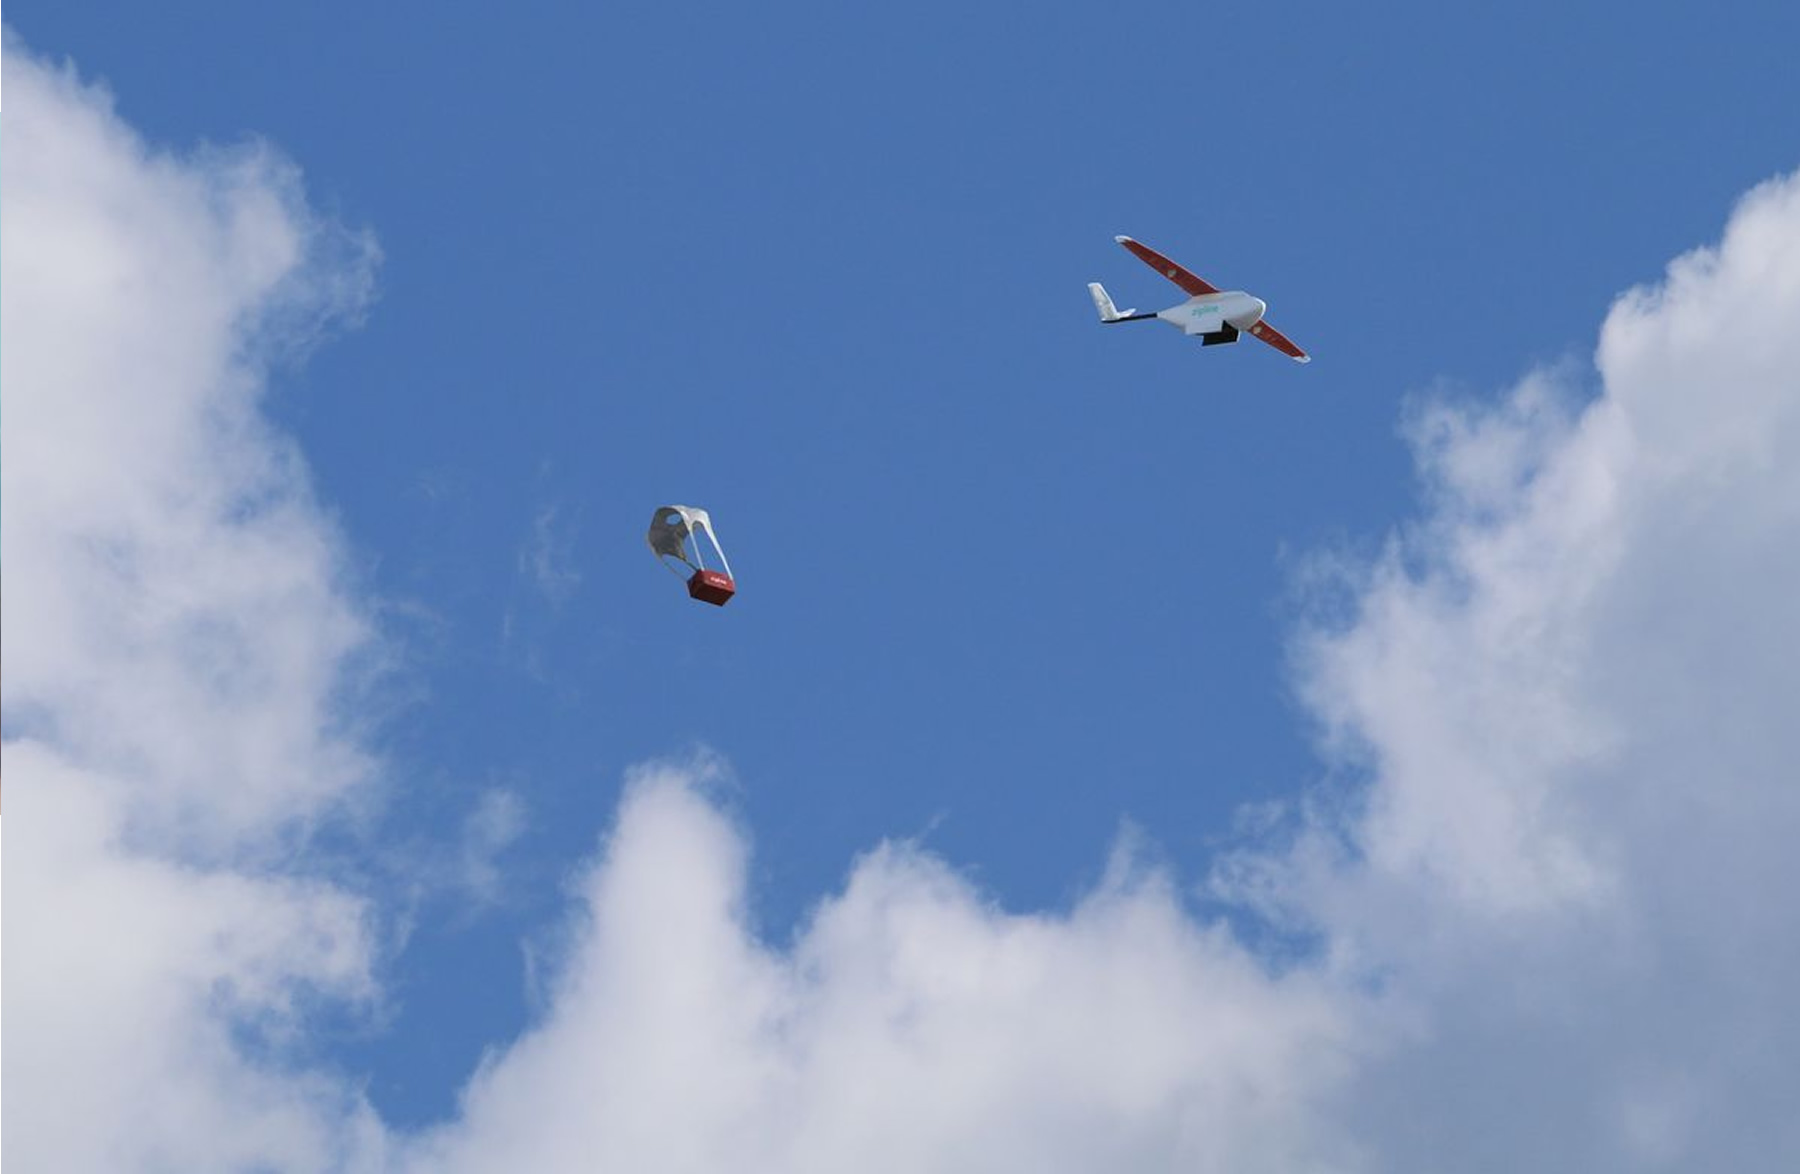 The Zipline delivery drone in Rwandan skies